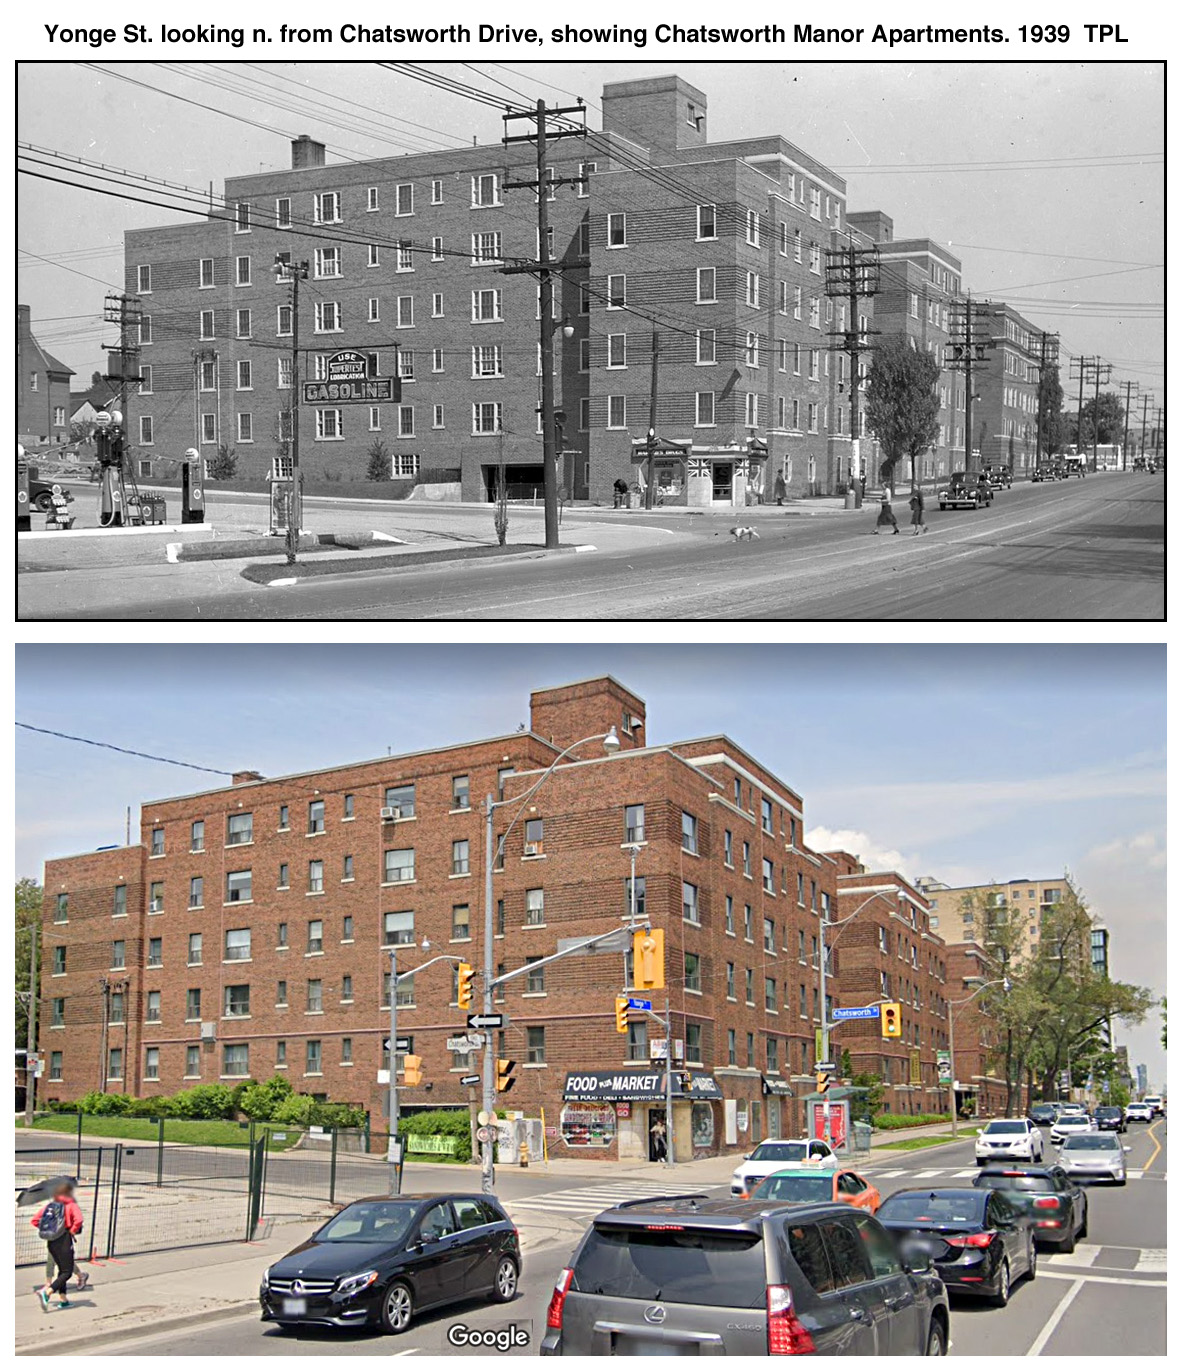 Yonge St. looking n. from Chatsworth Drive, showing Chatsworth Manor Apartments. 1939  TPL.jpg